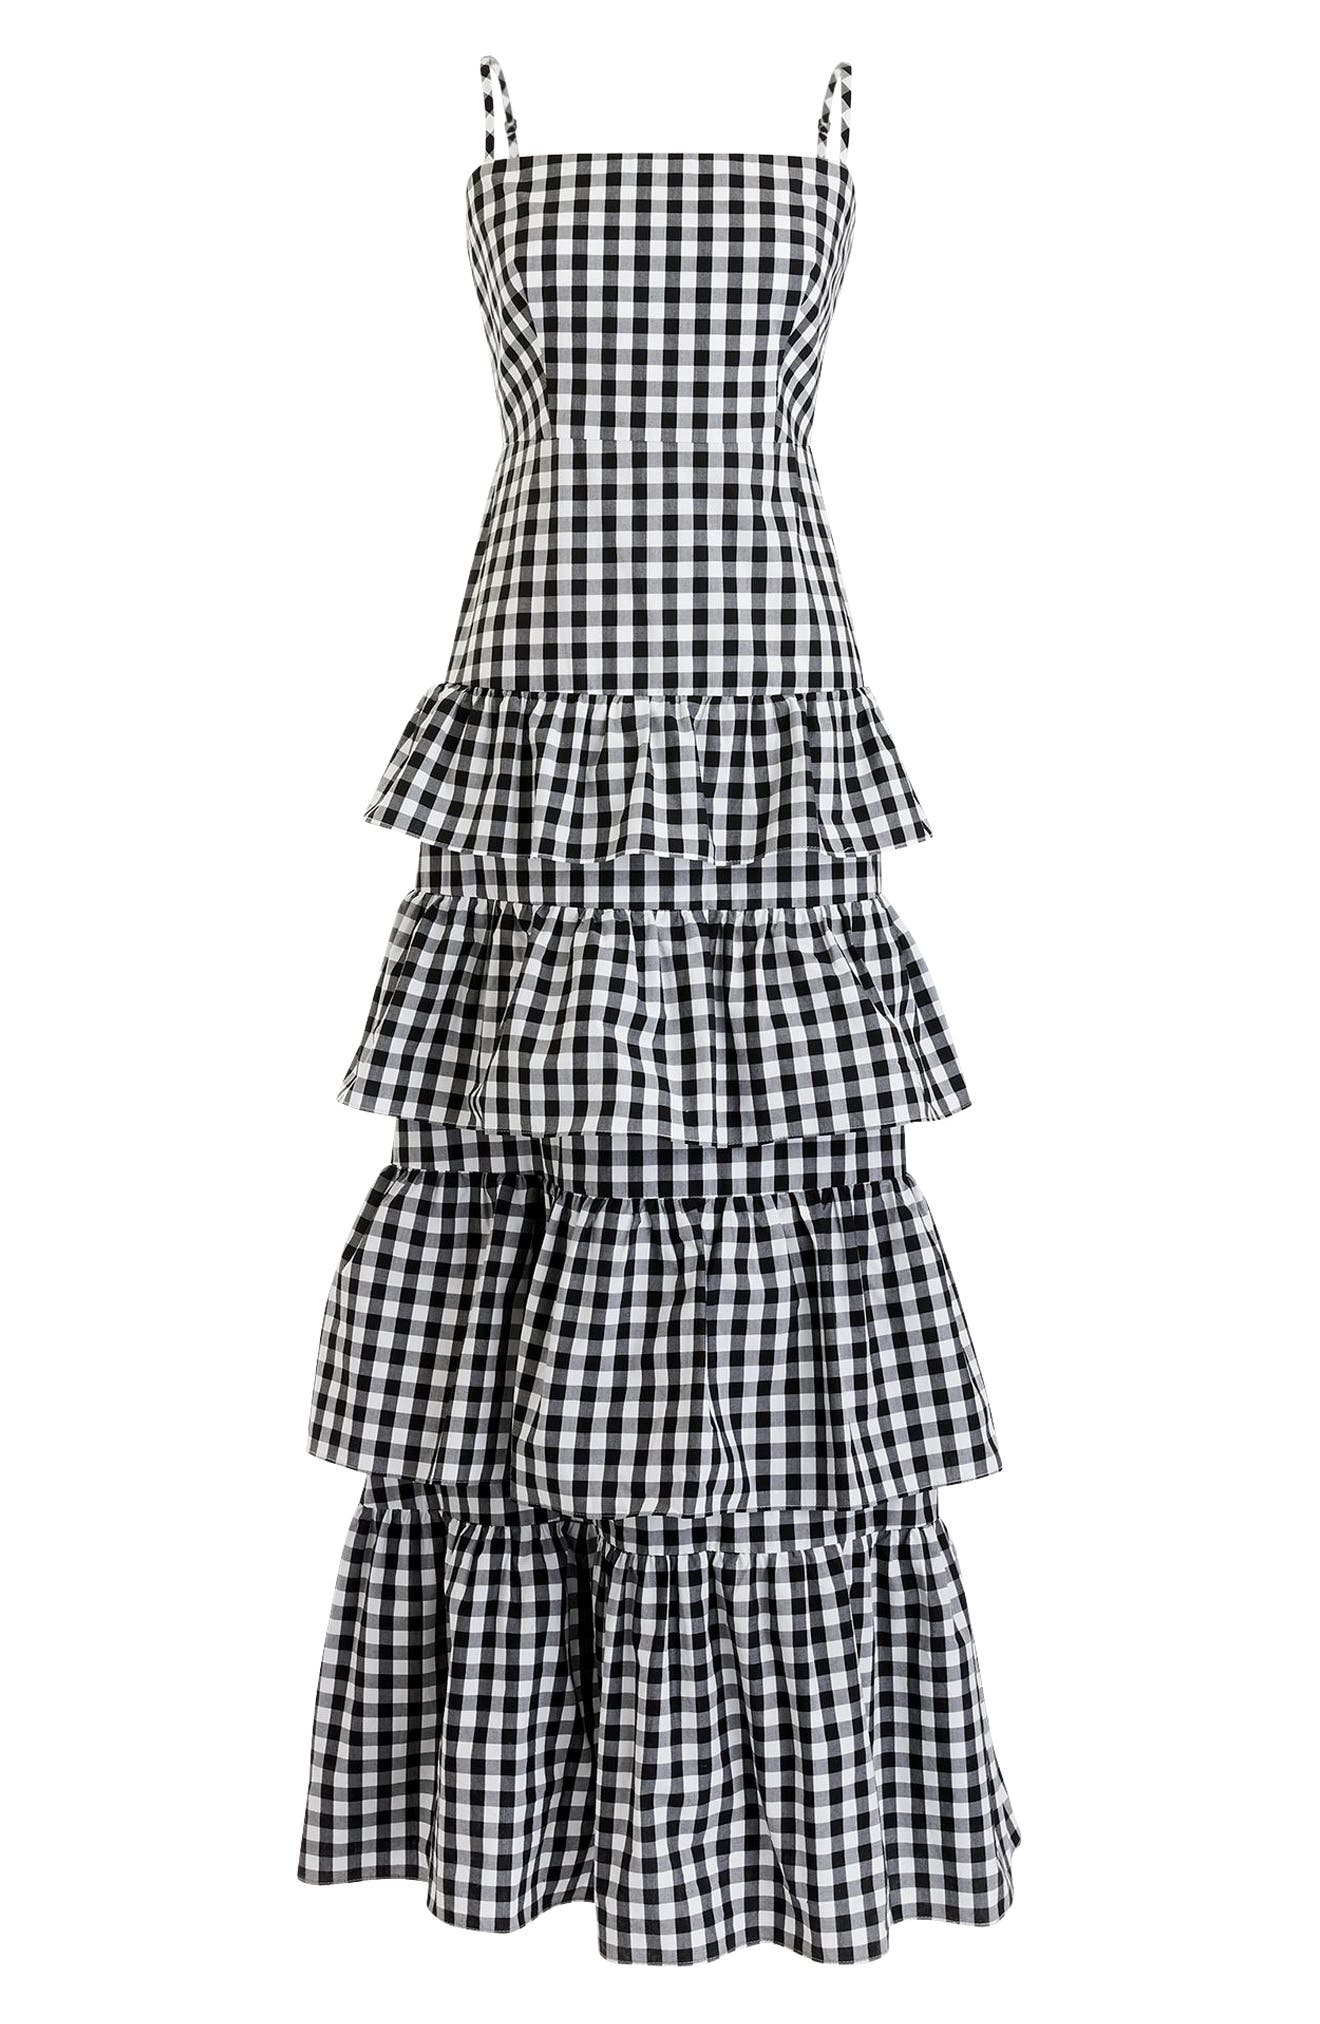 Tiered Gingham Dress,                             Alternate thumbnail 3, color,                             001